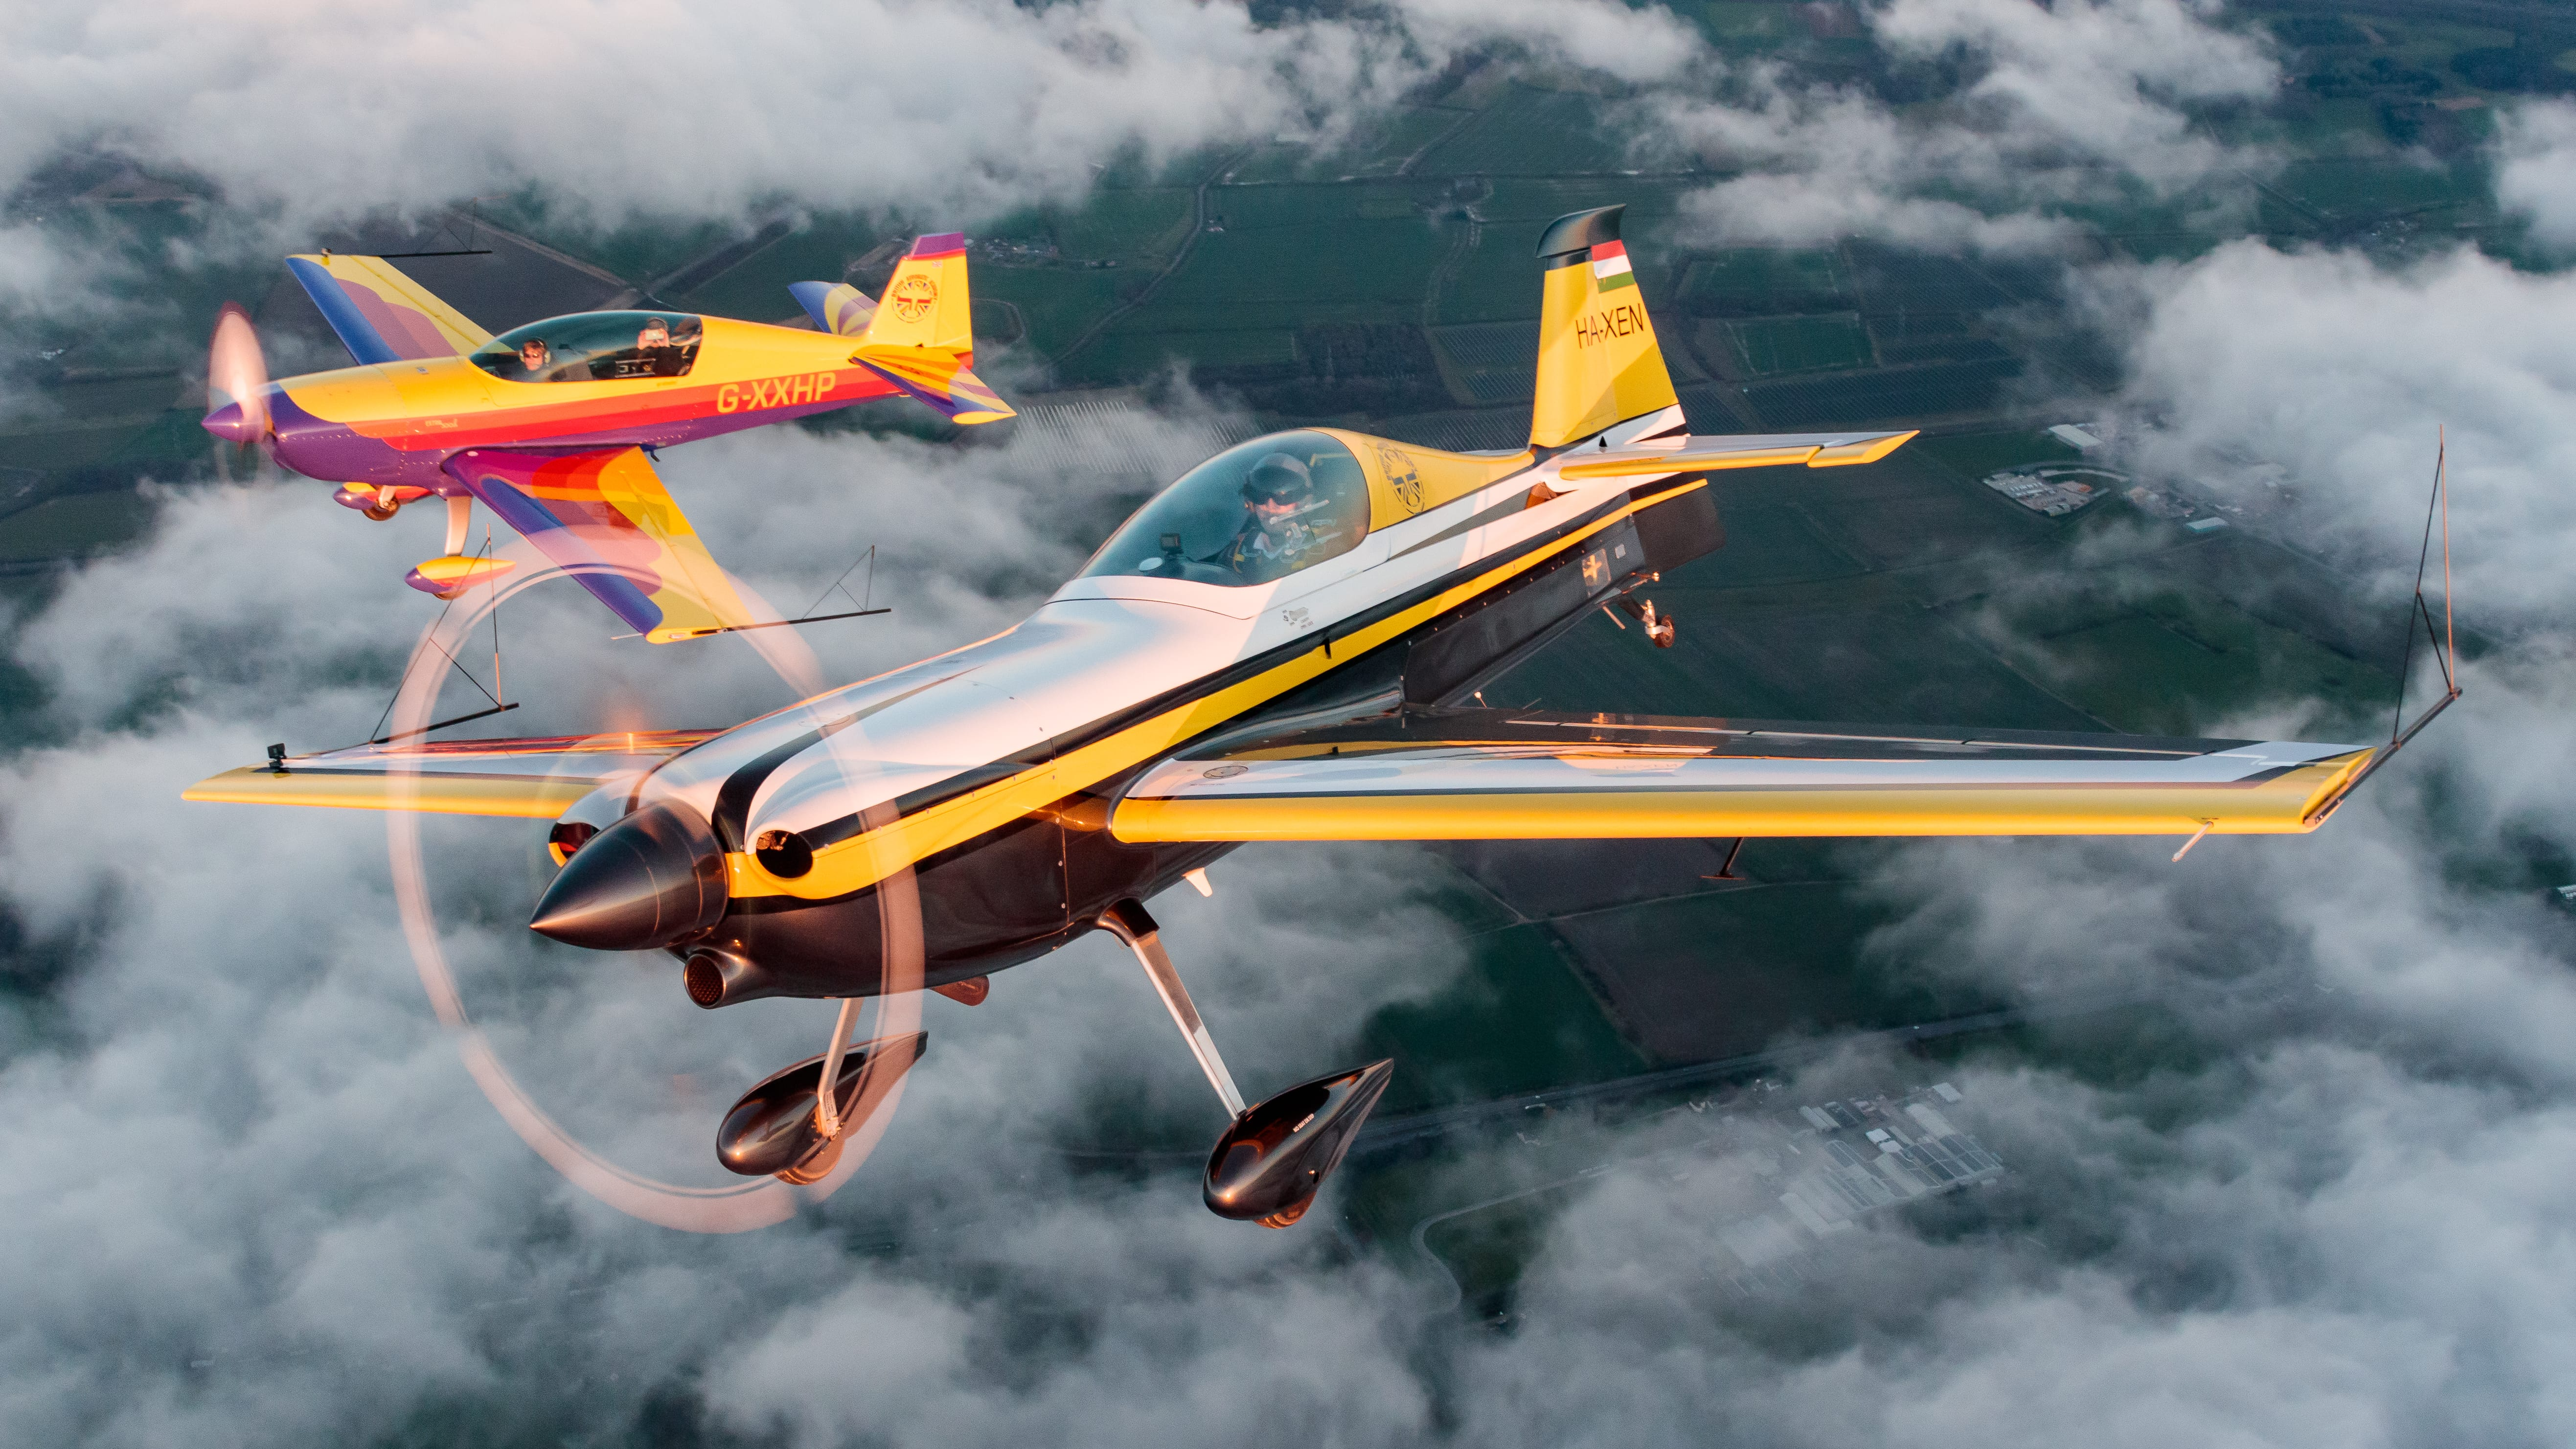 Two aerobatic aircraft flying through clouds